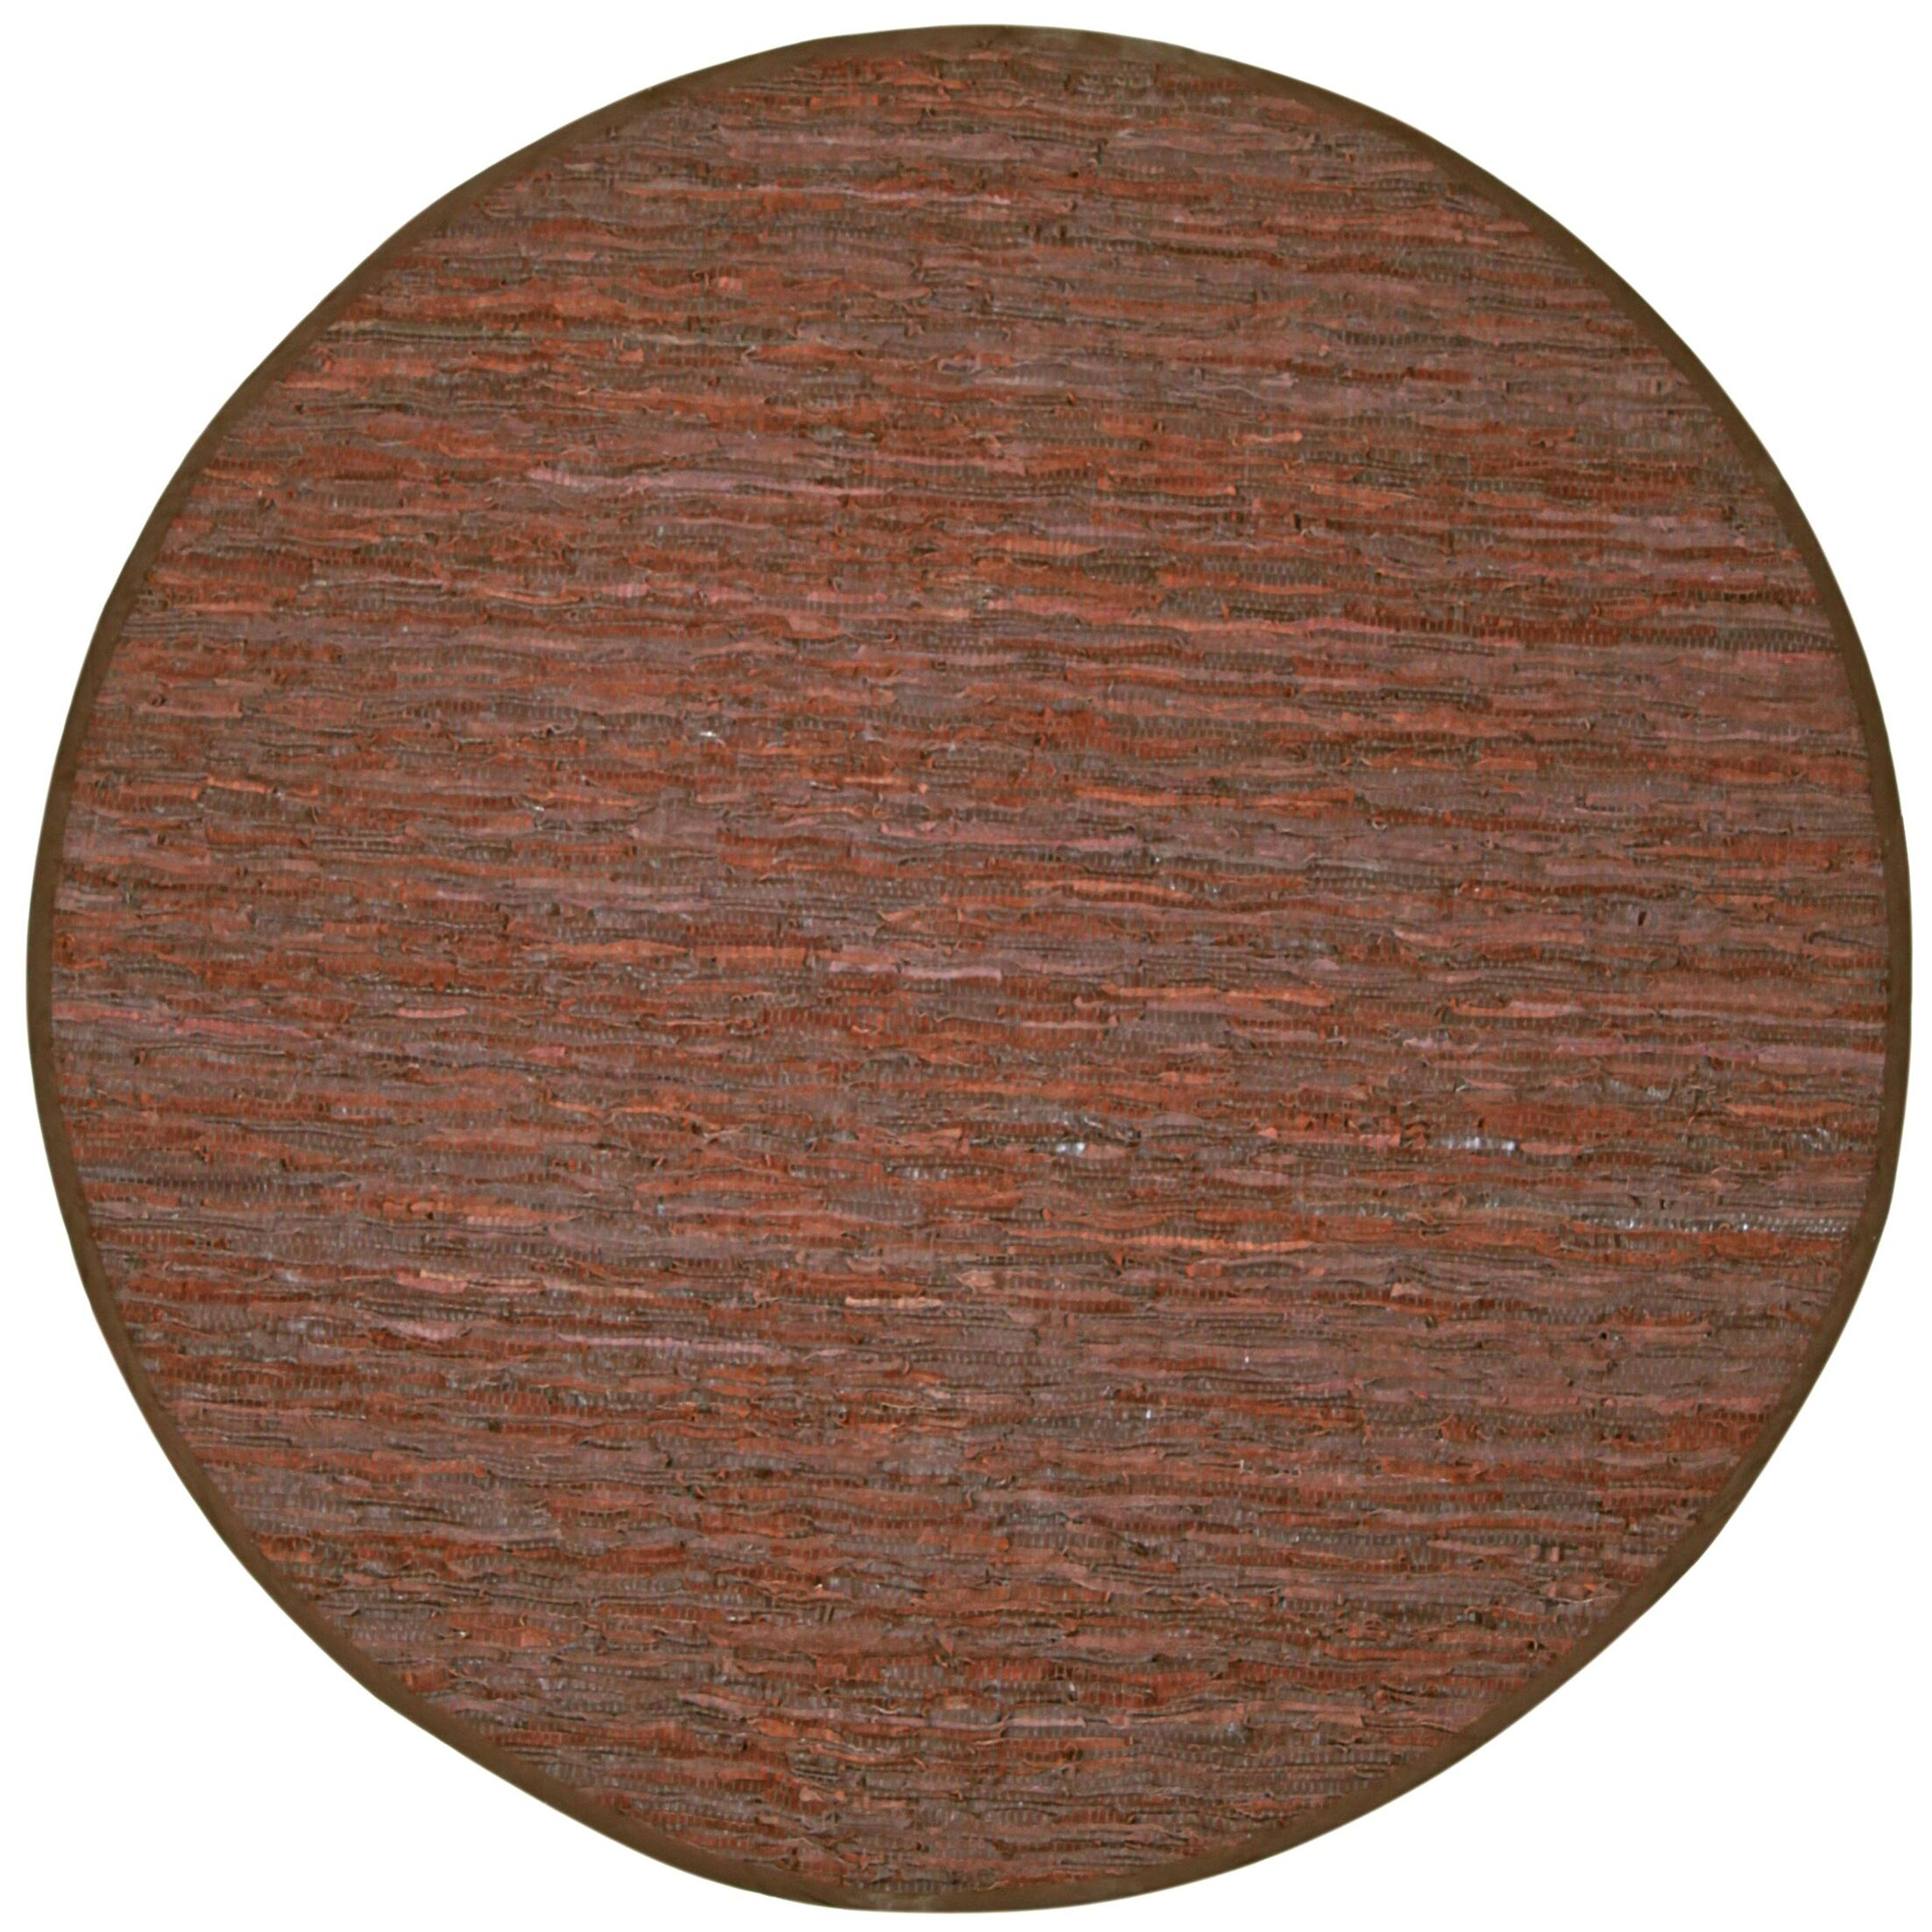 Sandford Leather Chindi Rust Area Rug Rug Size: Round 8'